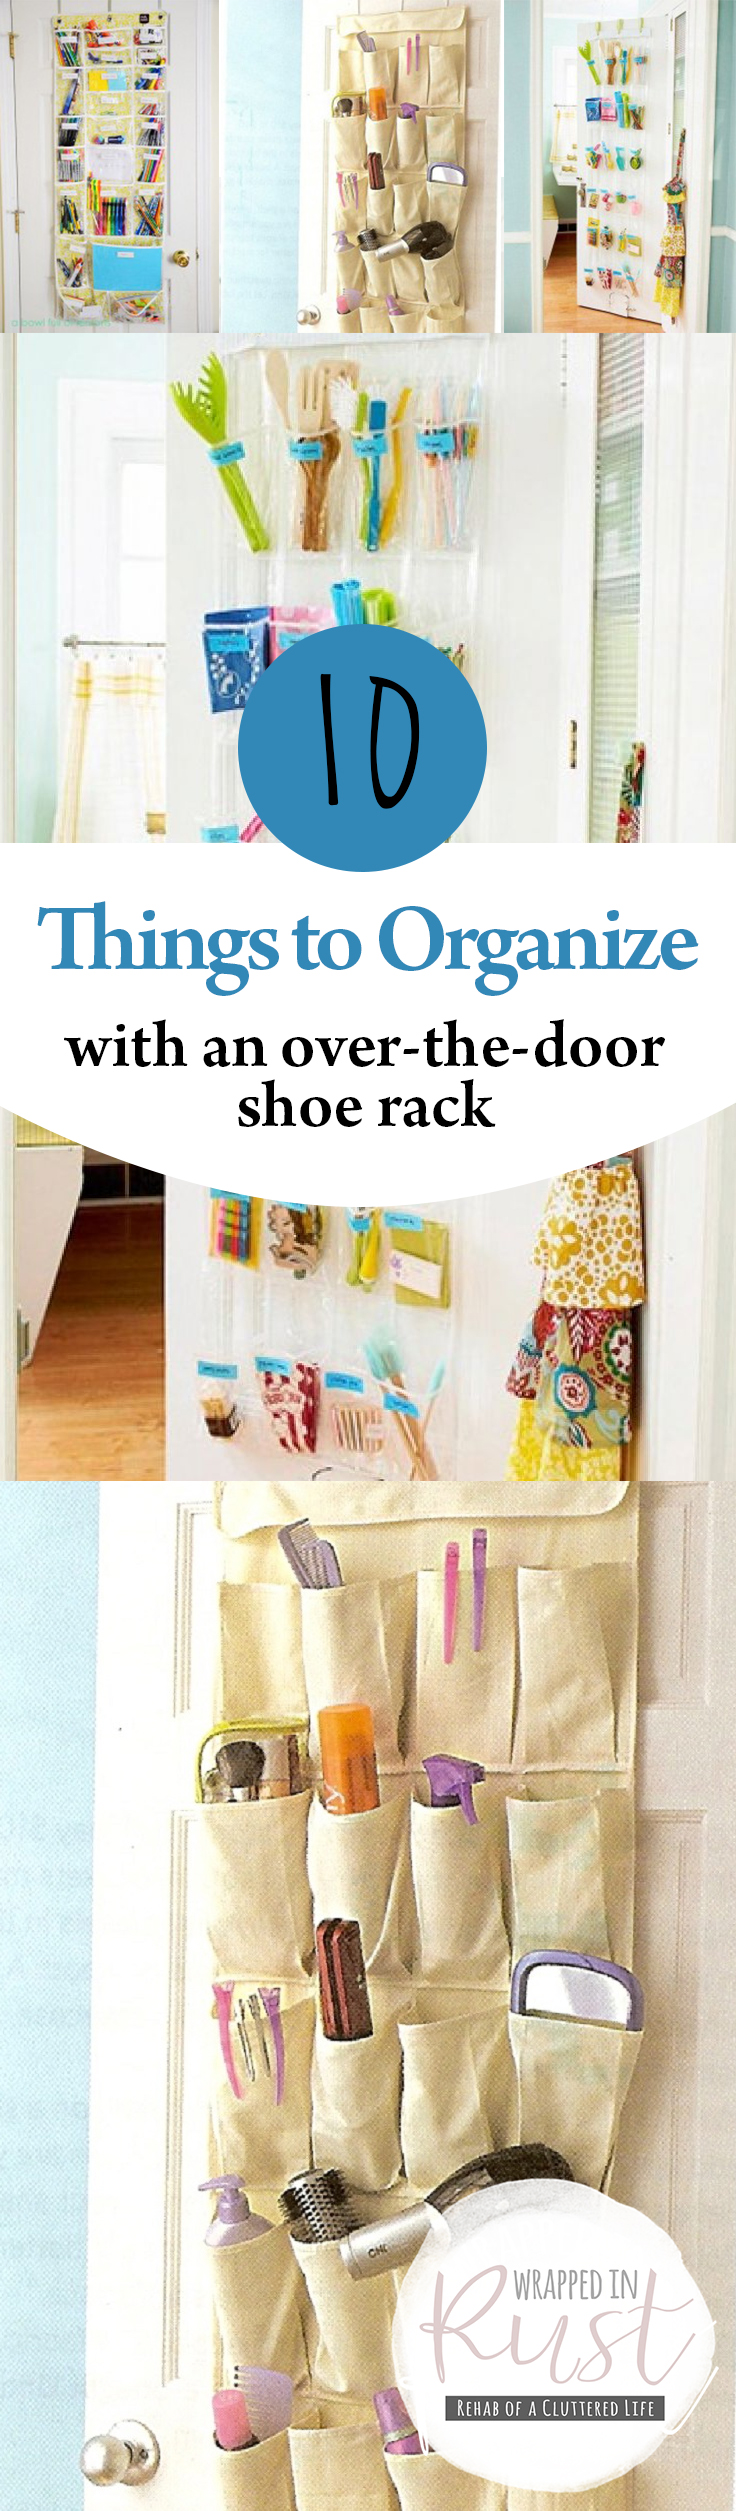 10 Things To Organize With An Over The Door Shoe Rack